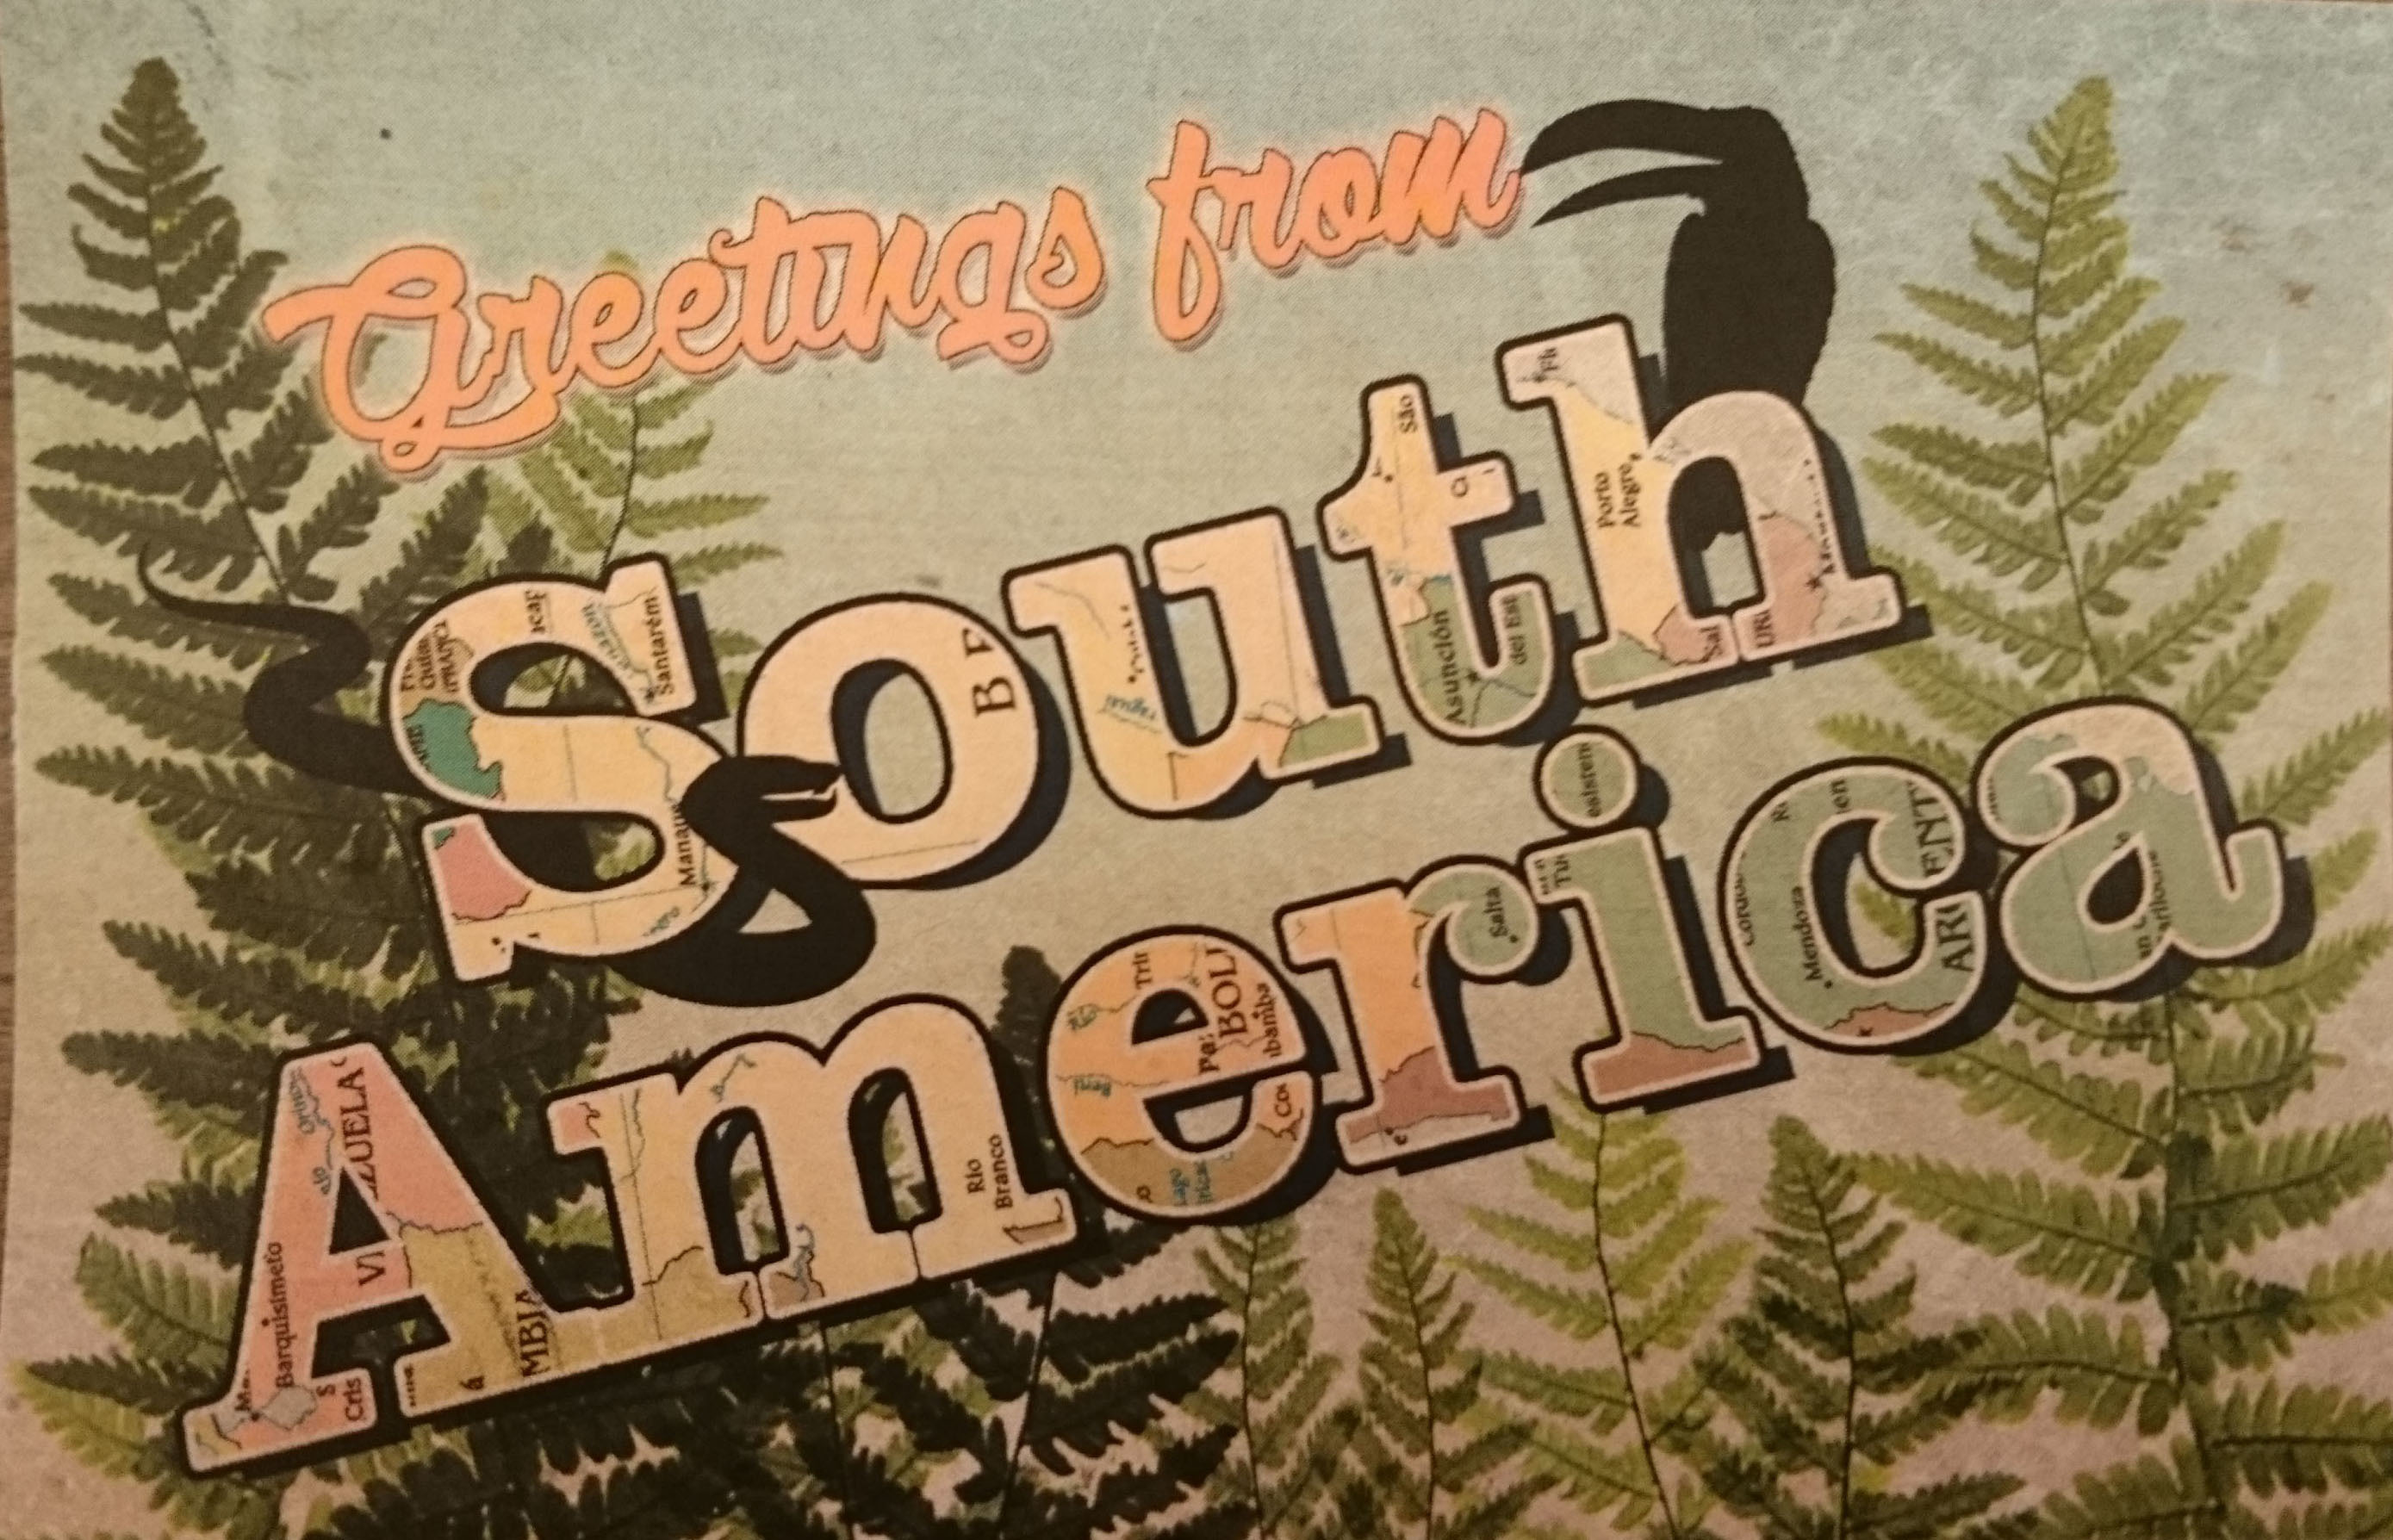 Greetings from South America postcard